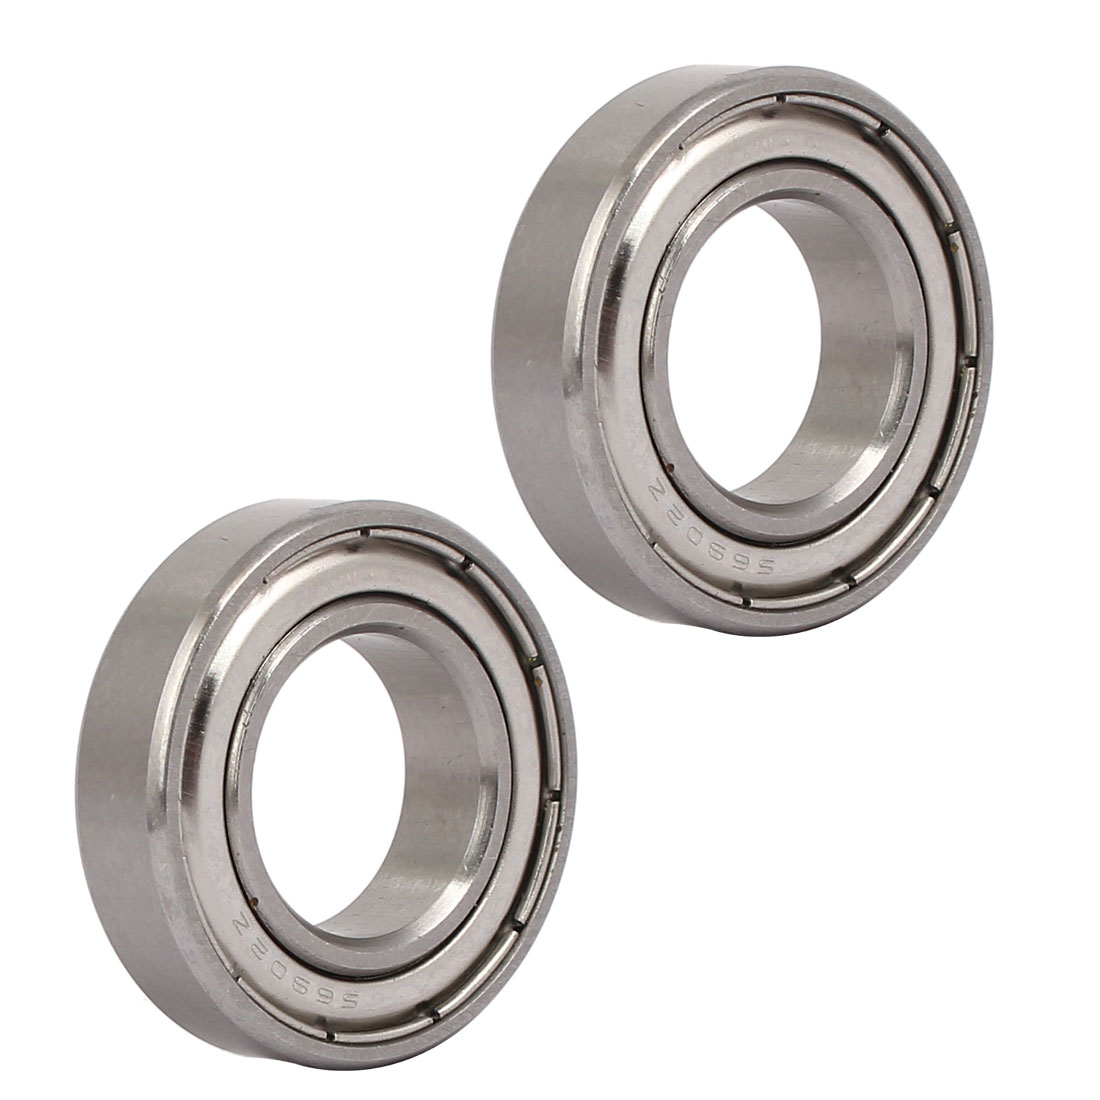 28mmx15mmx7mm 6902 Stainless Steel Shielded Deep Groove Ball Bearing 2pcs